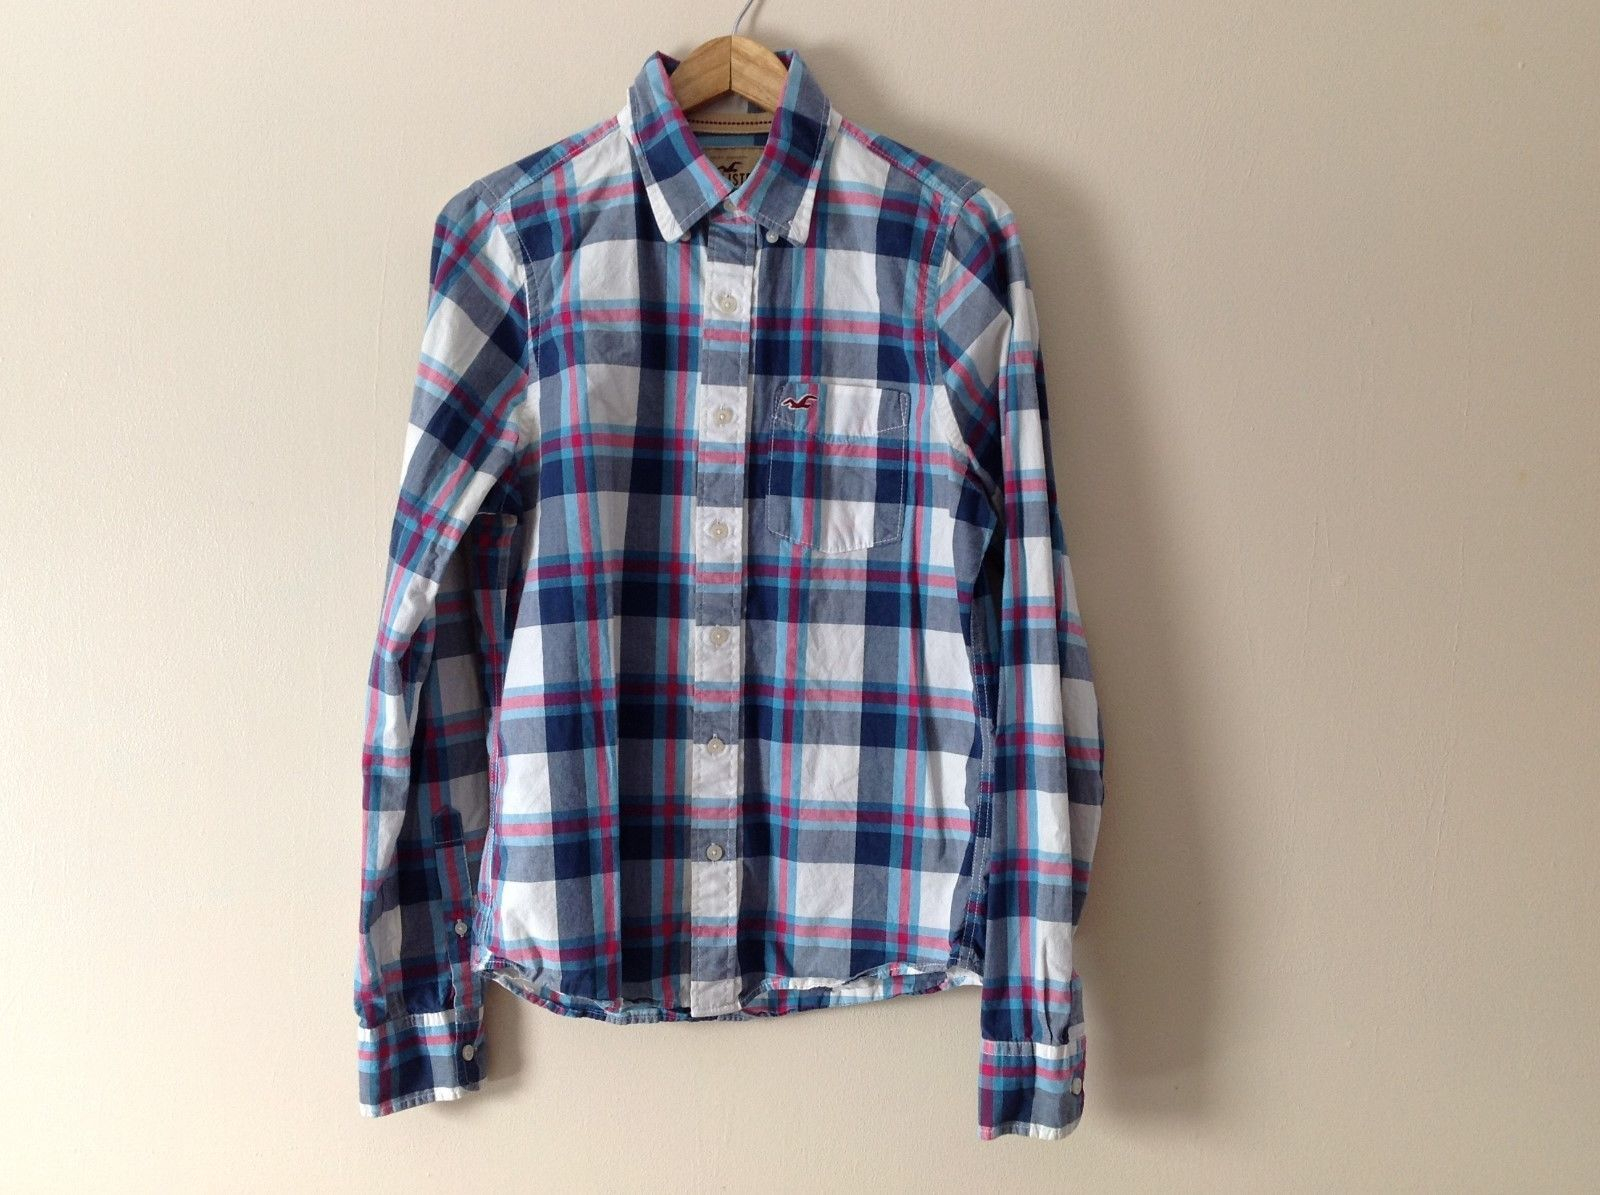 Hollister Blue Gray Pink and White Checkered Button Up Shirt Size M